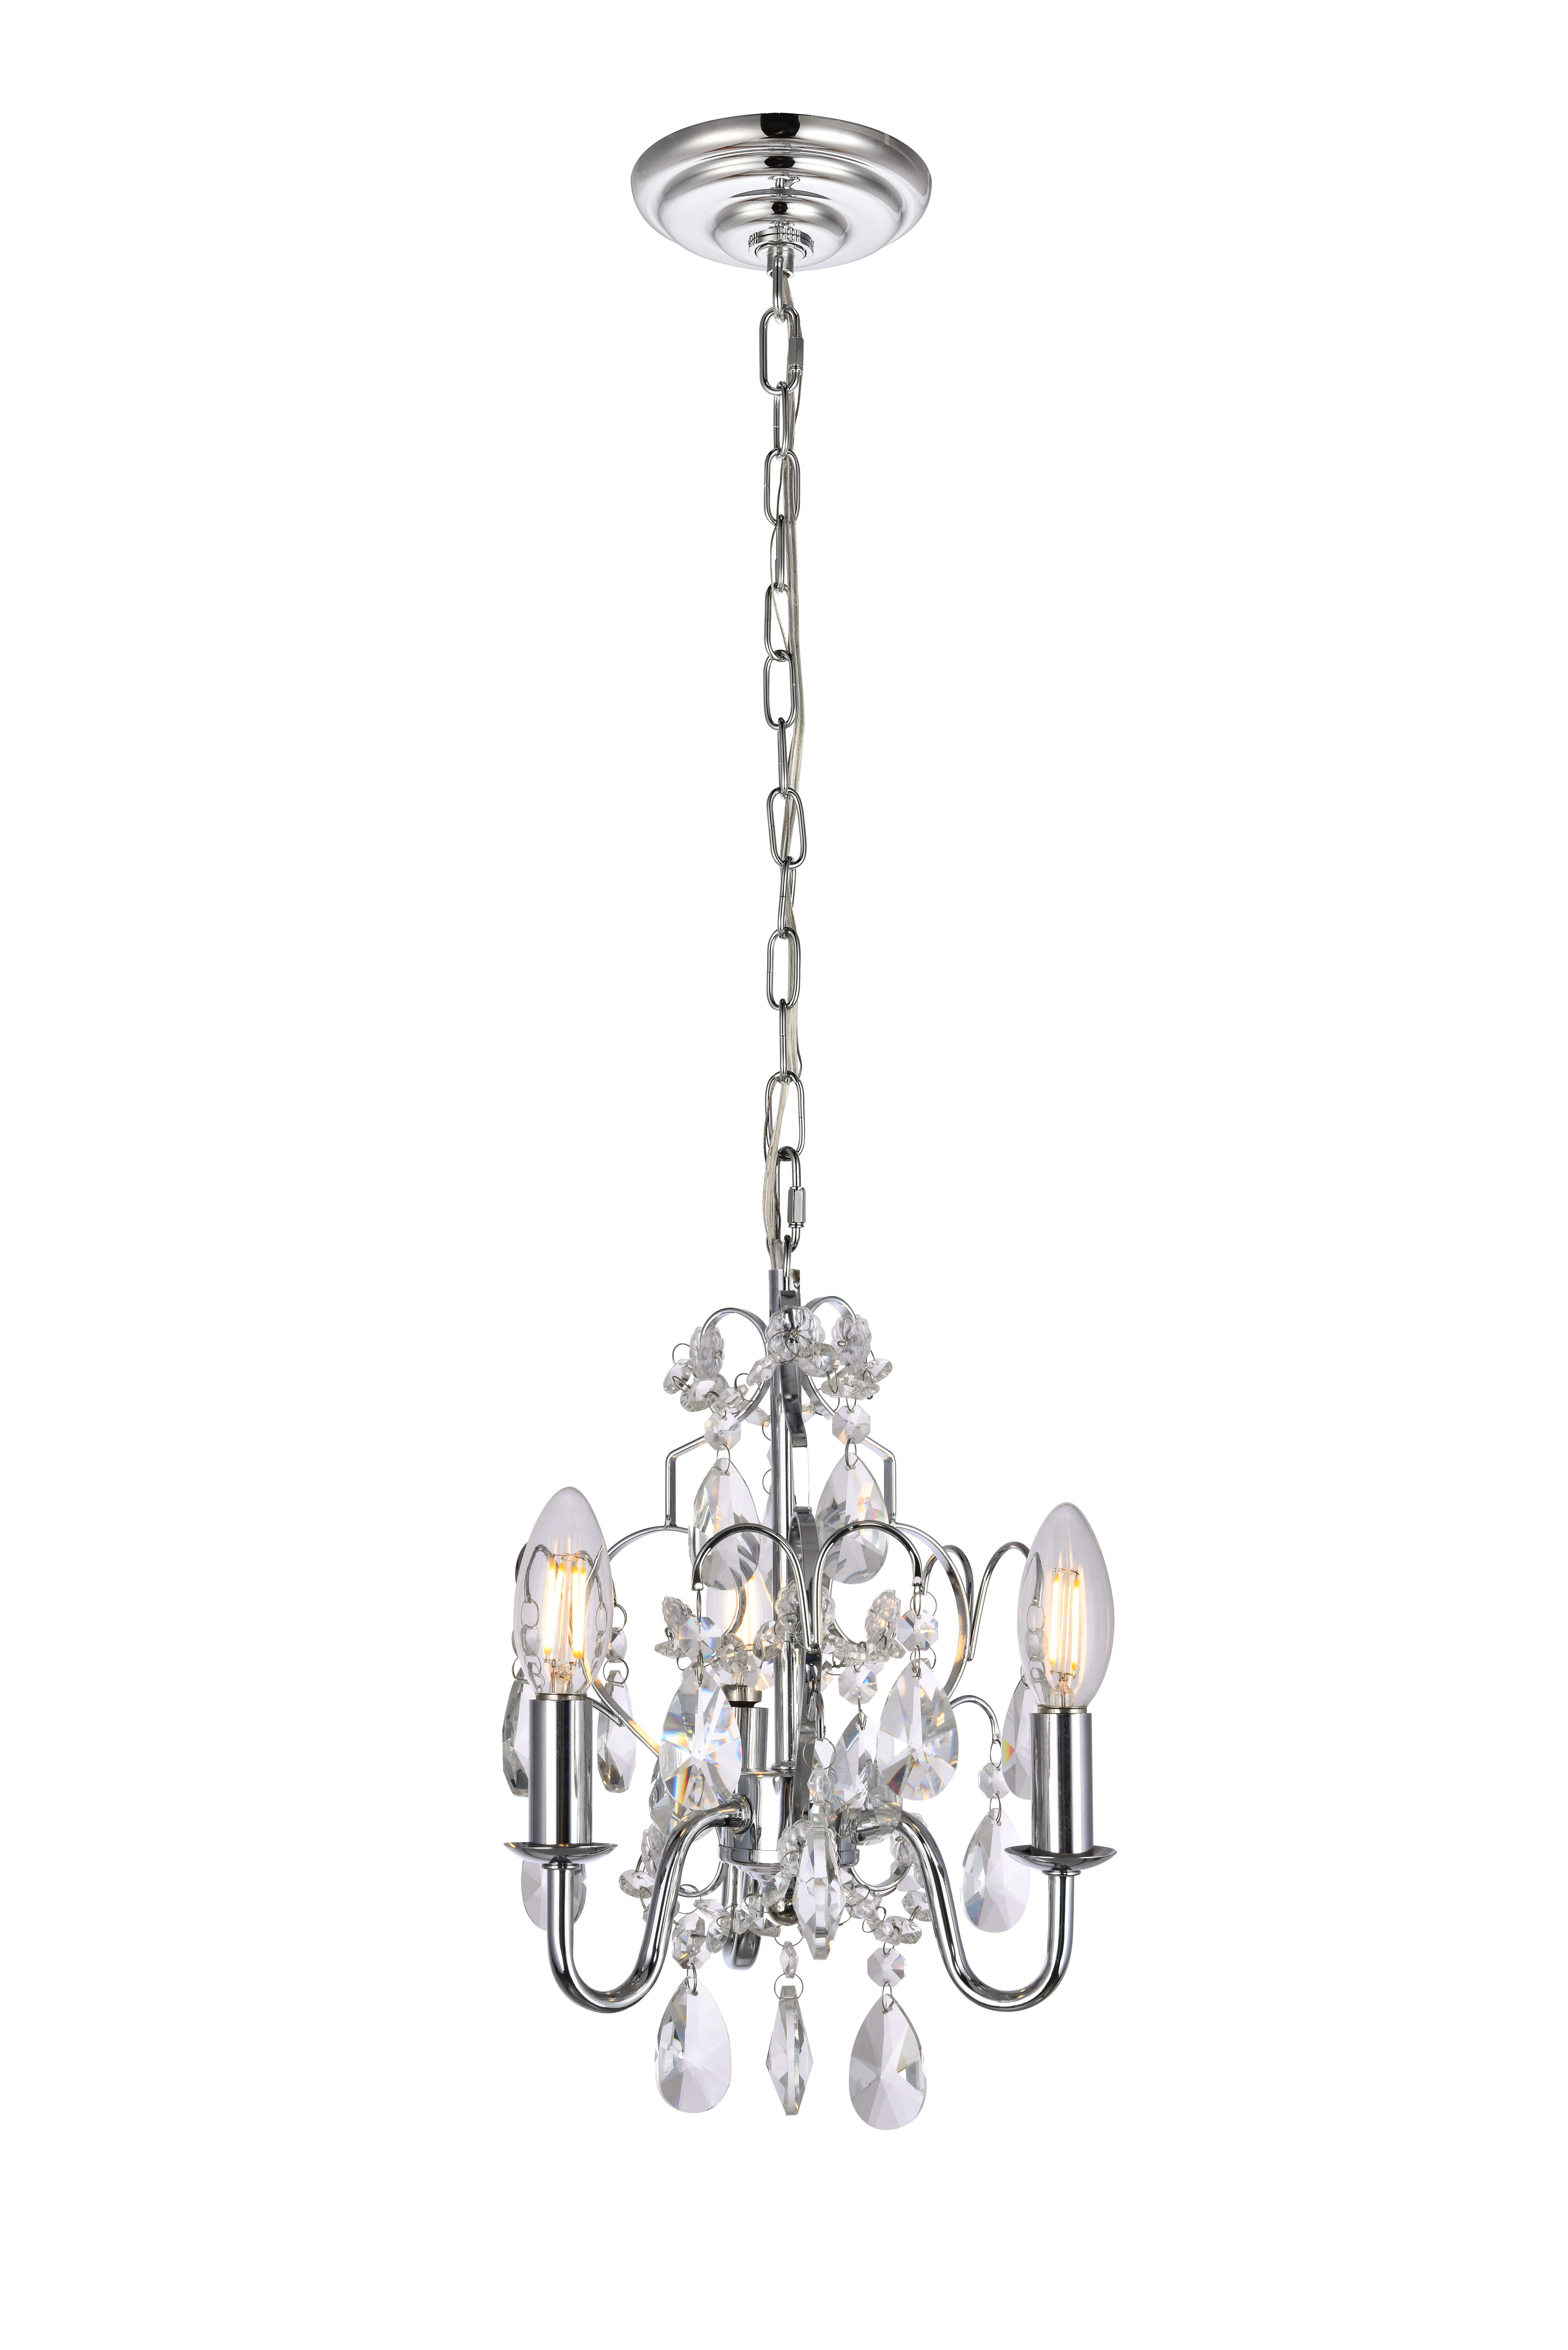 Aldora 4 Light Candle Style Chandeliers Inside Current Dagnall 3 Light Candle Style Chandelier (View 8 of 20)